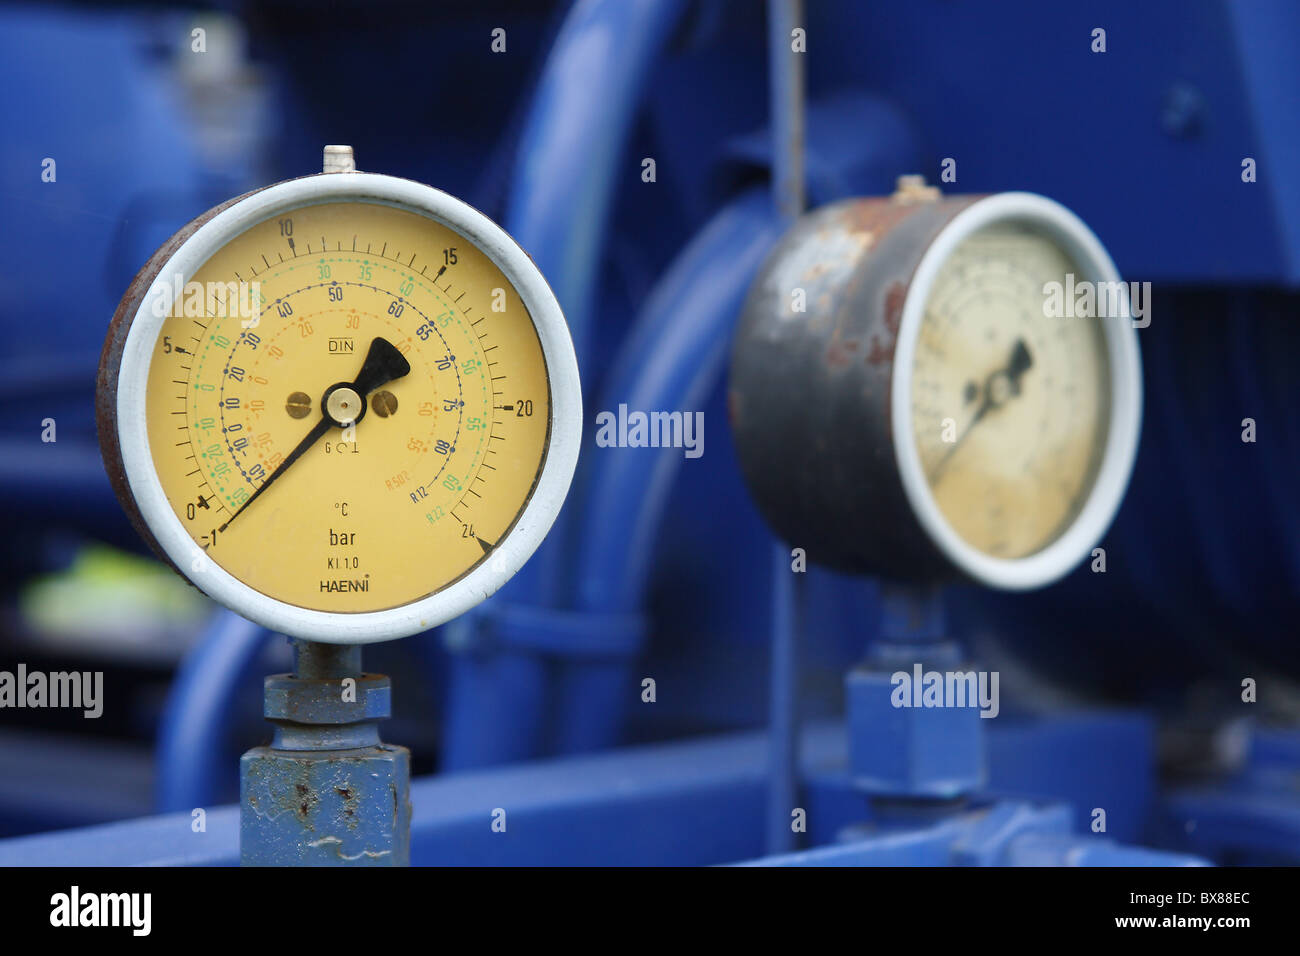 Old pressure gauge on a pump. Stock Photo